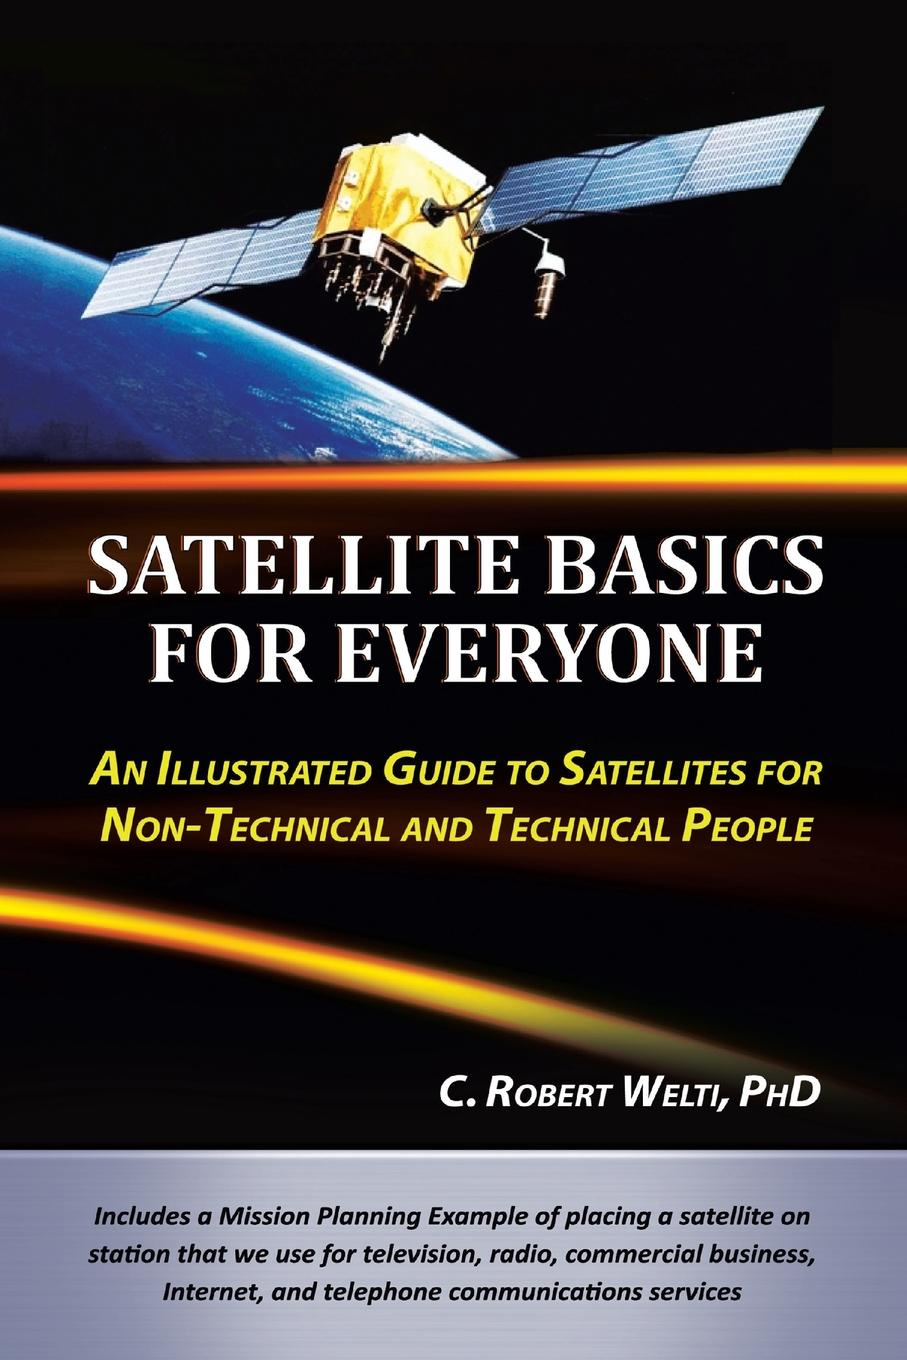 C. Robert Welti PhD Satellite Basics for Everyone. An Illustrated Guide to Satellites for Non-Technical and Technical People marsha peterson maass fundamentals of genealogy basics for everyone